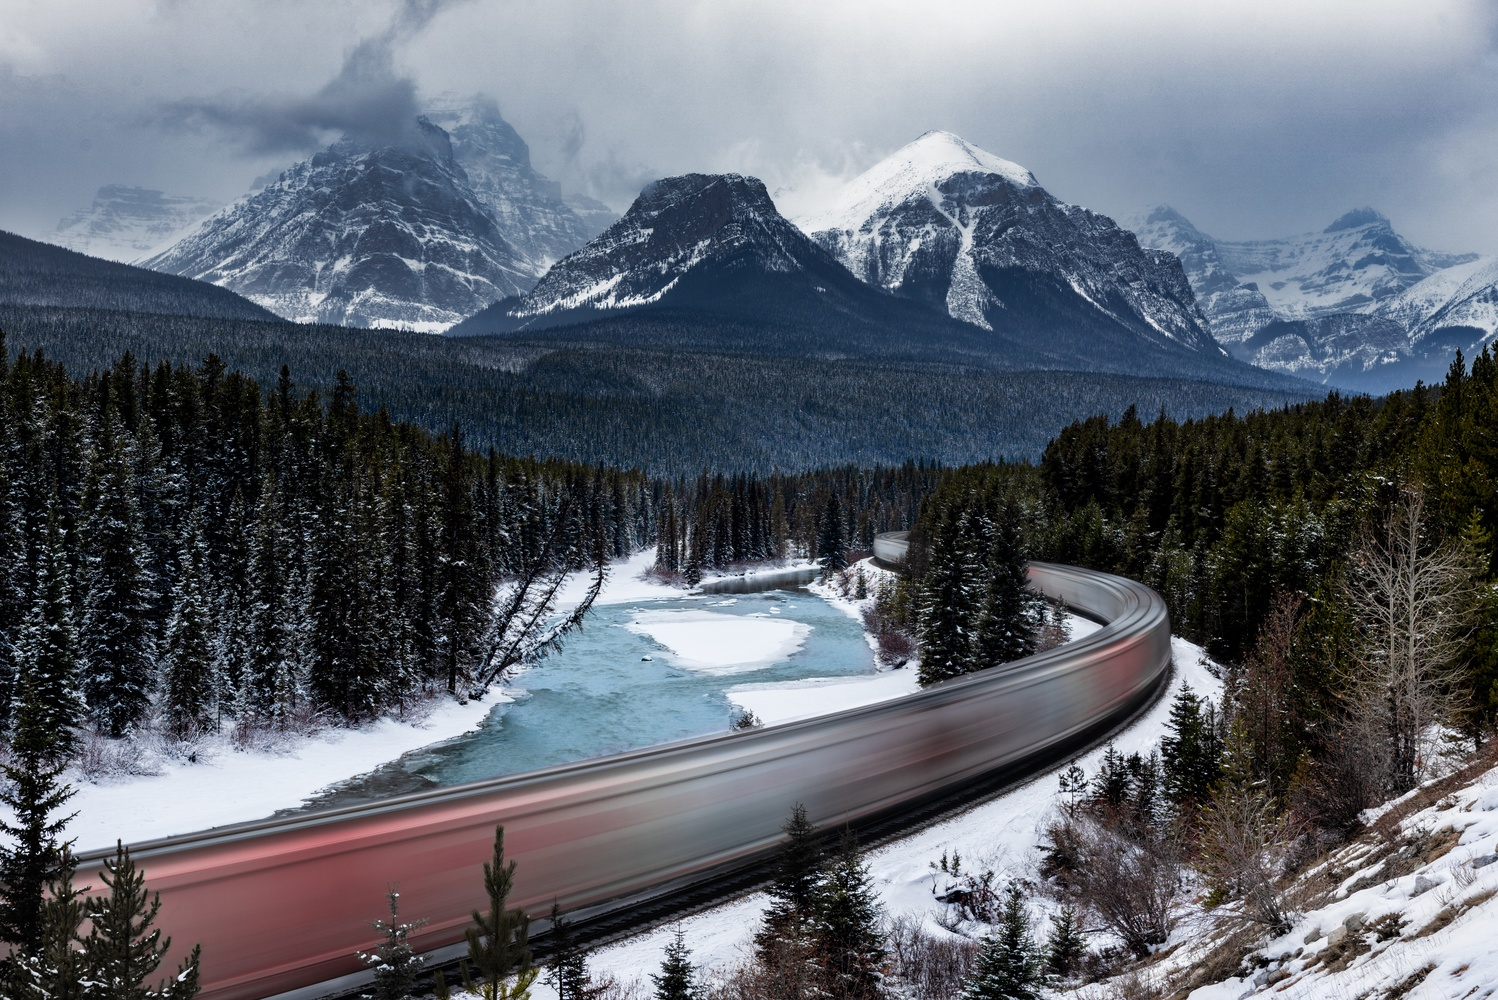 Morant's Curve by Chris Ward